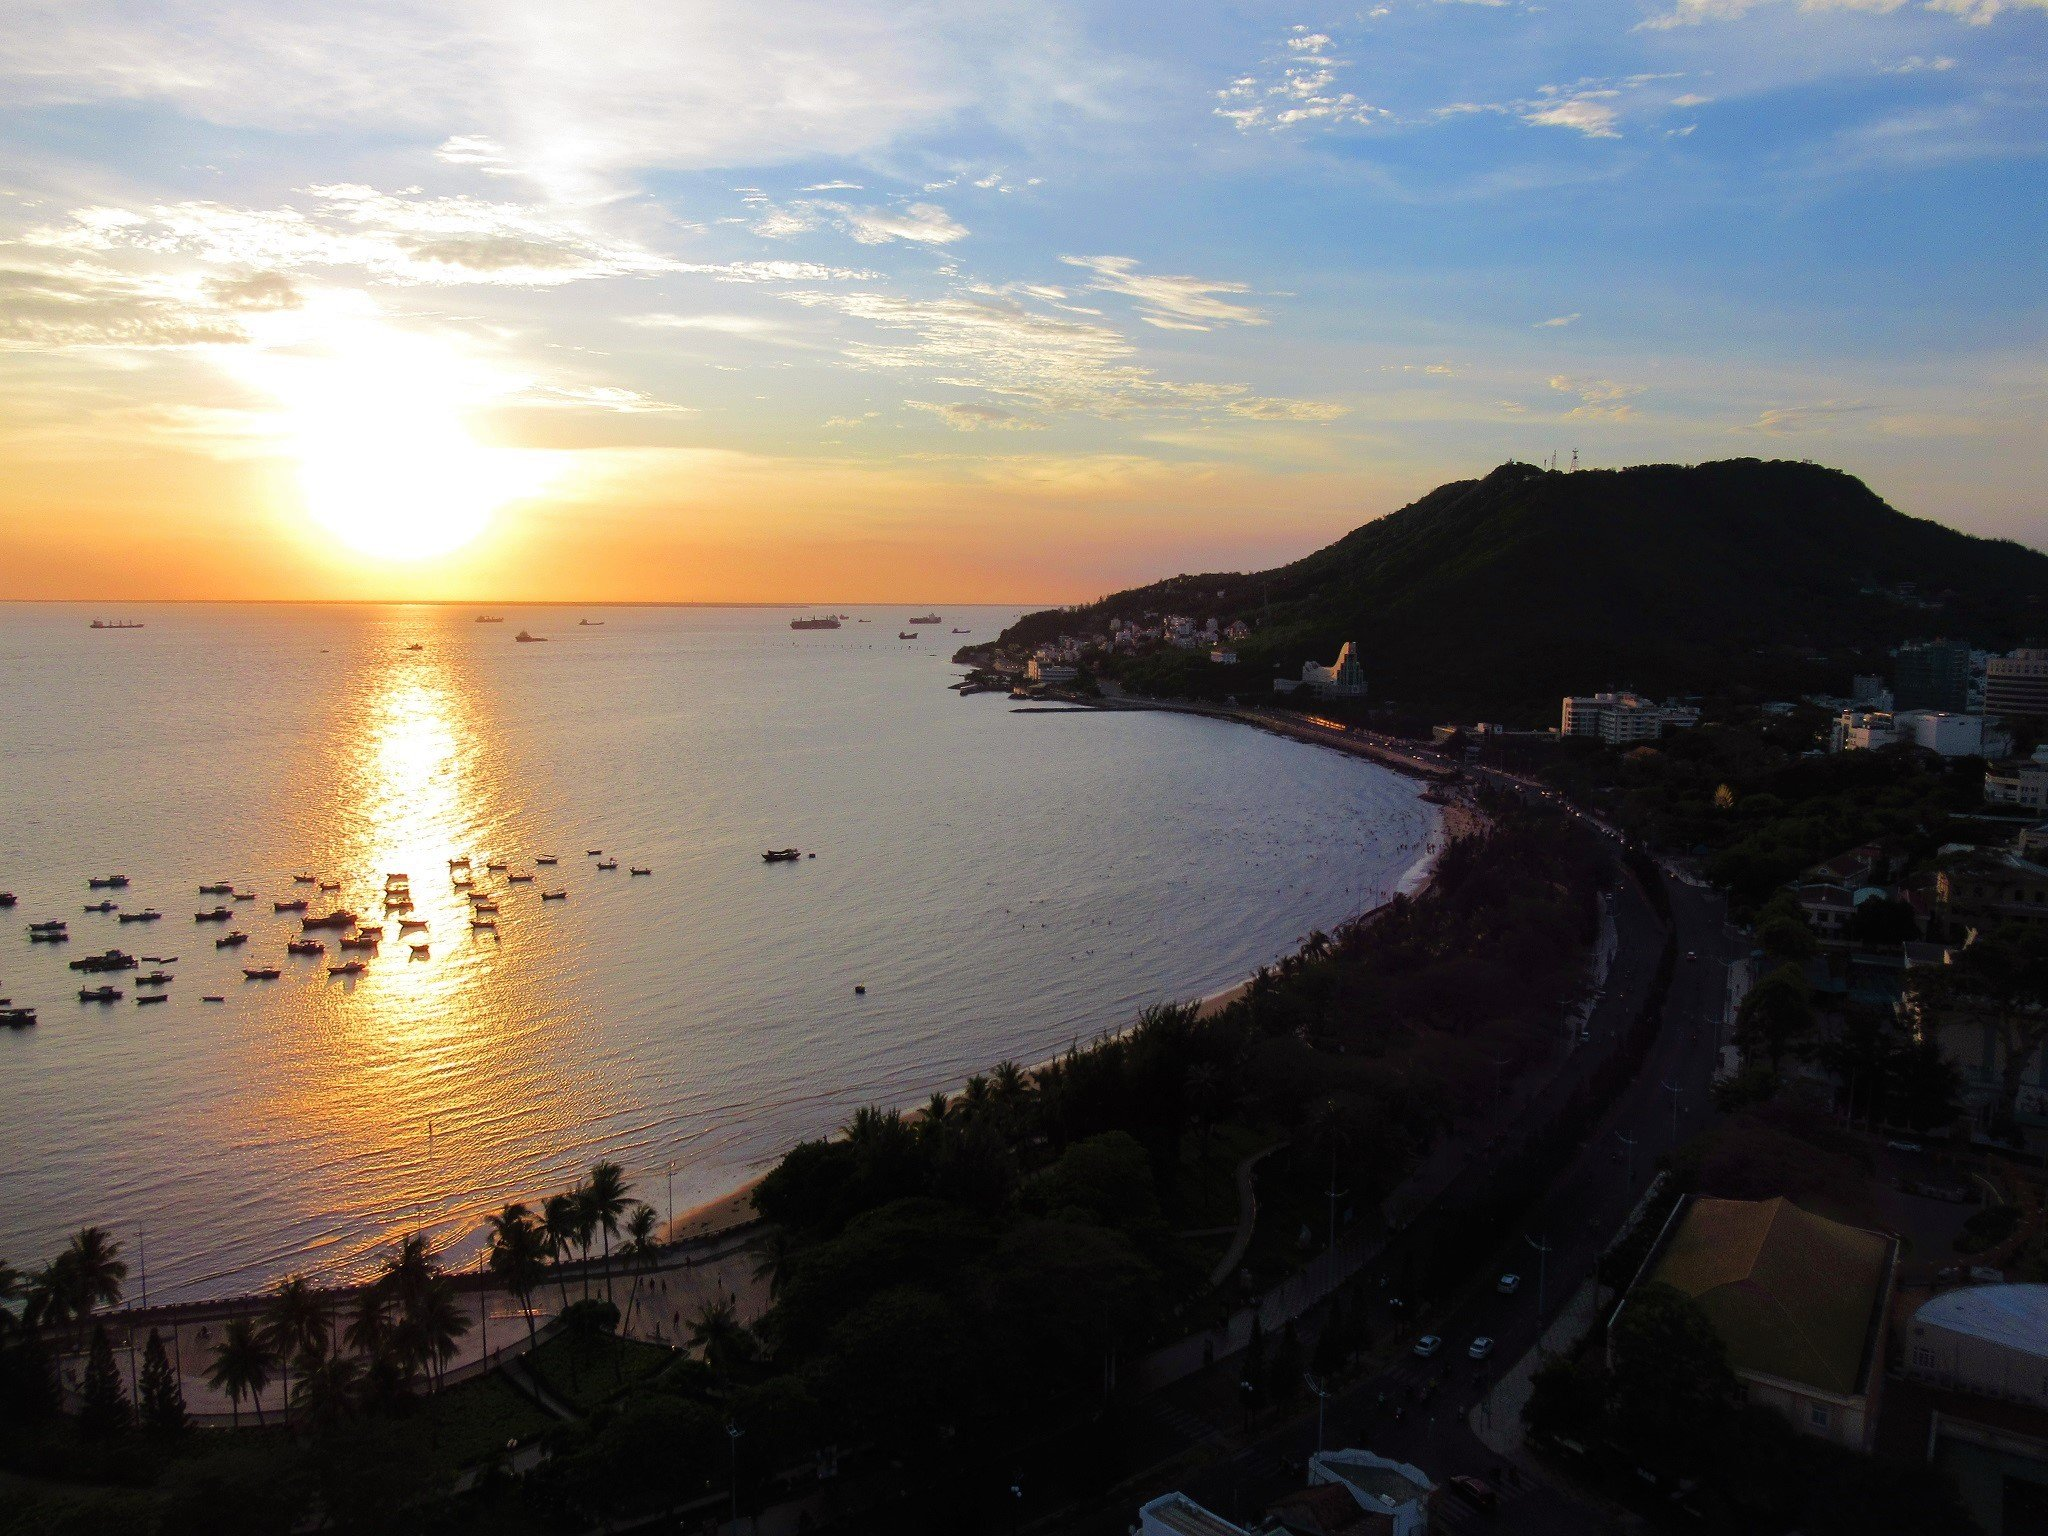 Vung Tau seen from the Breeze rooftop sky bar at Fusion Suites